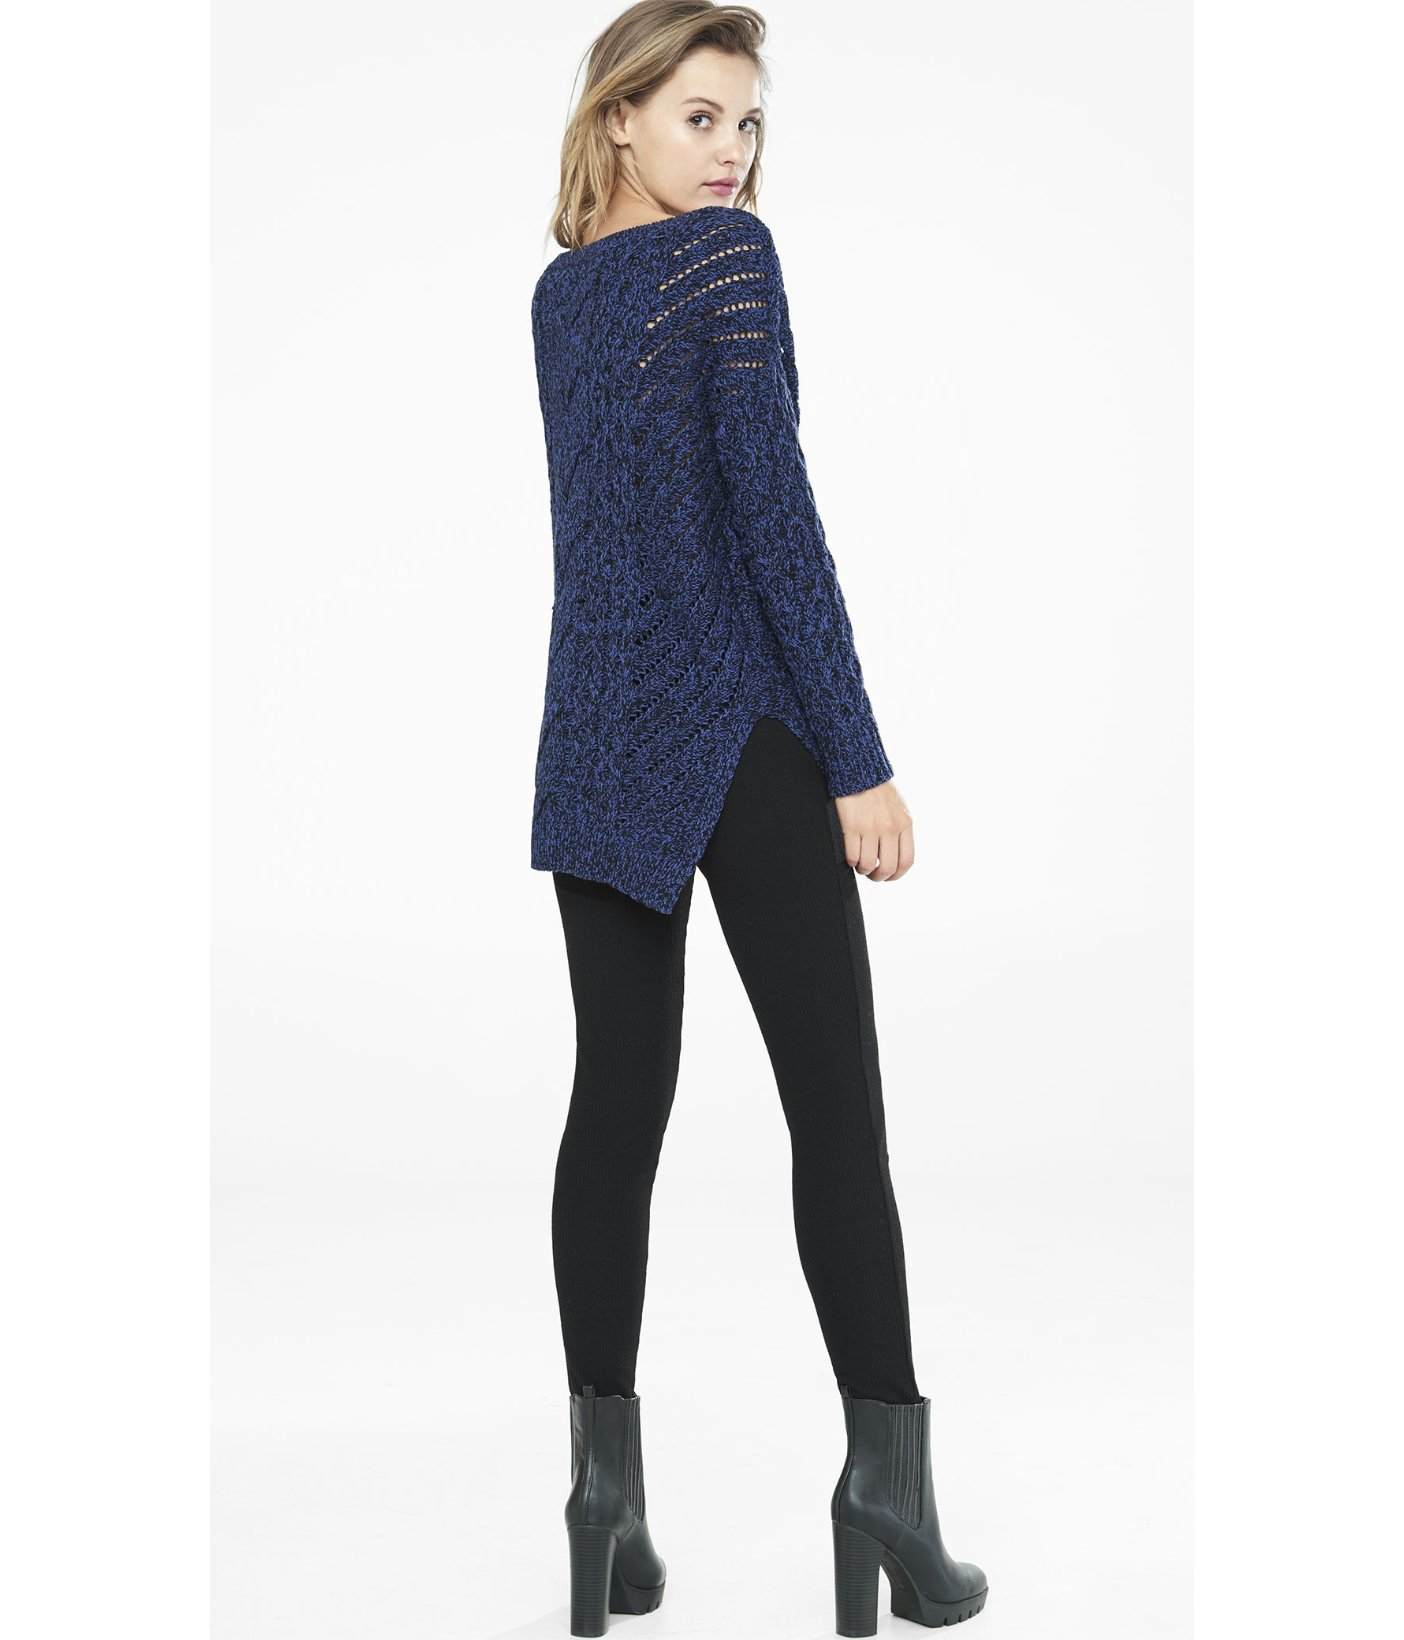 Express Marl Oversized Open Cable Knit Tunic Sweater in Blue | Lyst